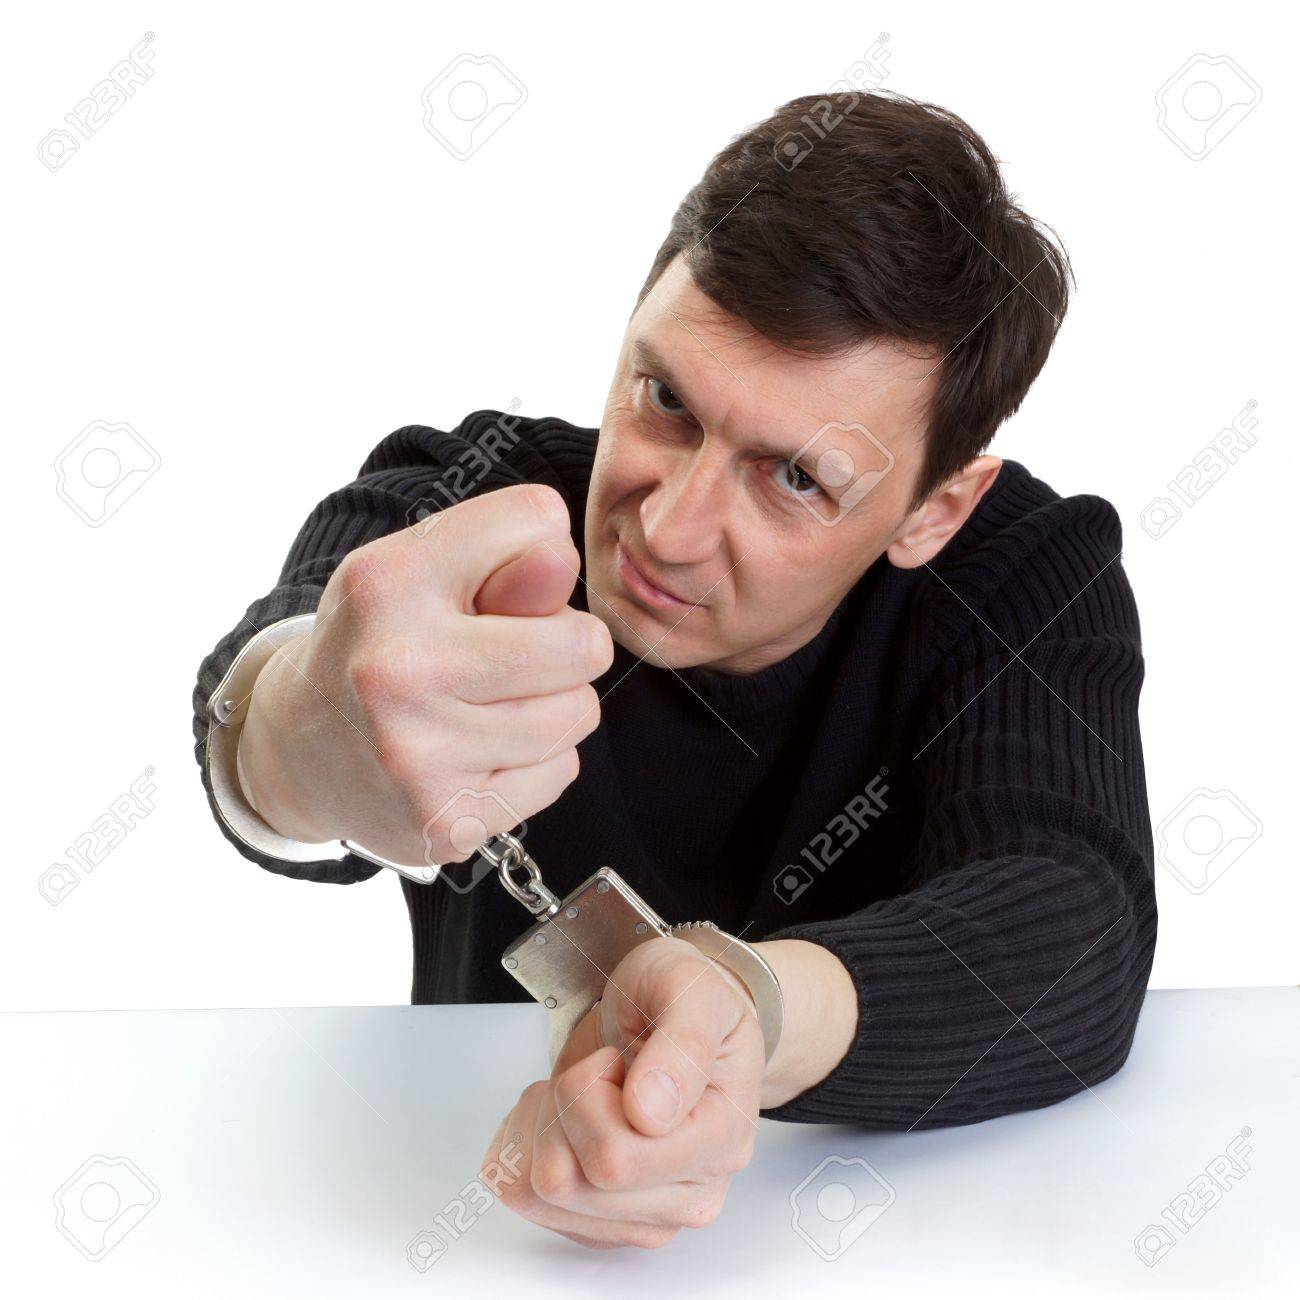 The man in handcuffs shows a fig. Stock Photo - 19203518